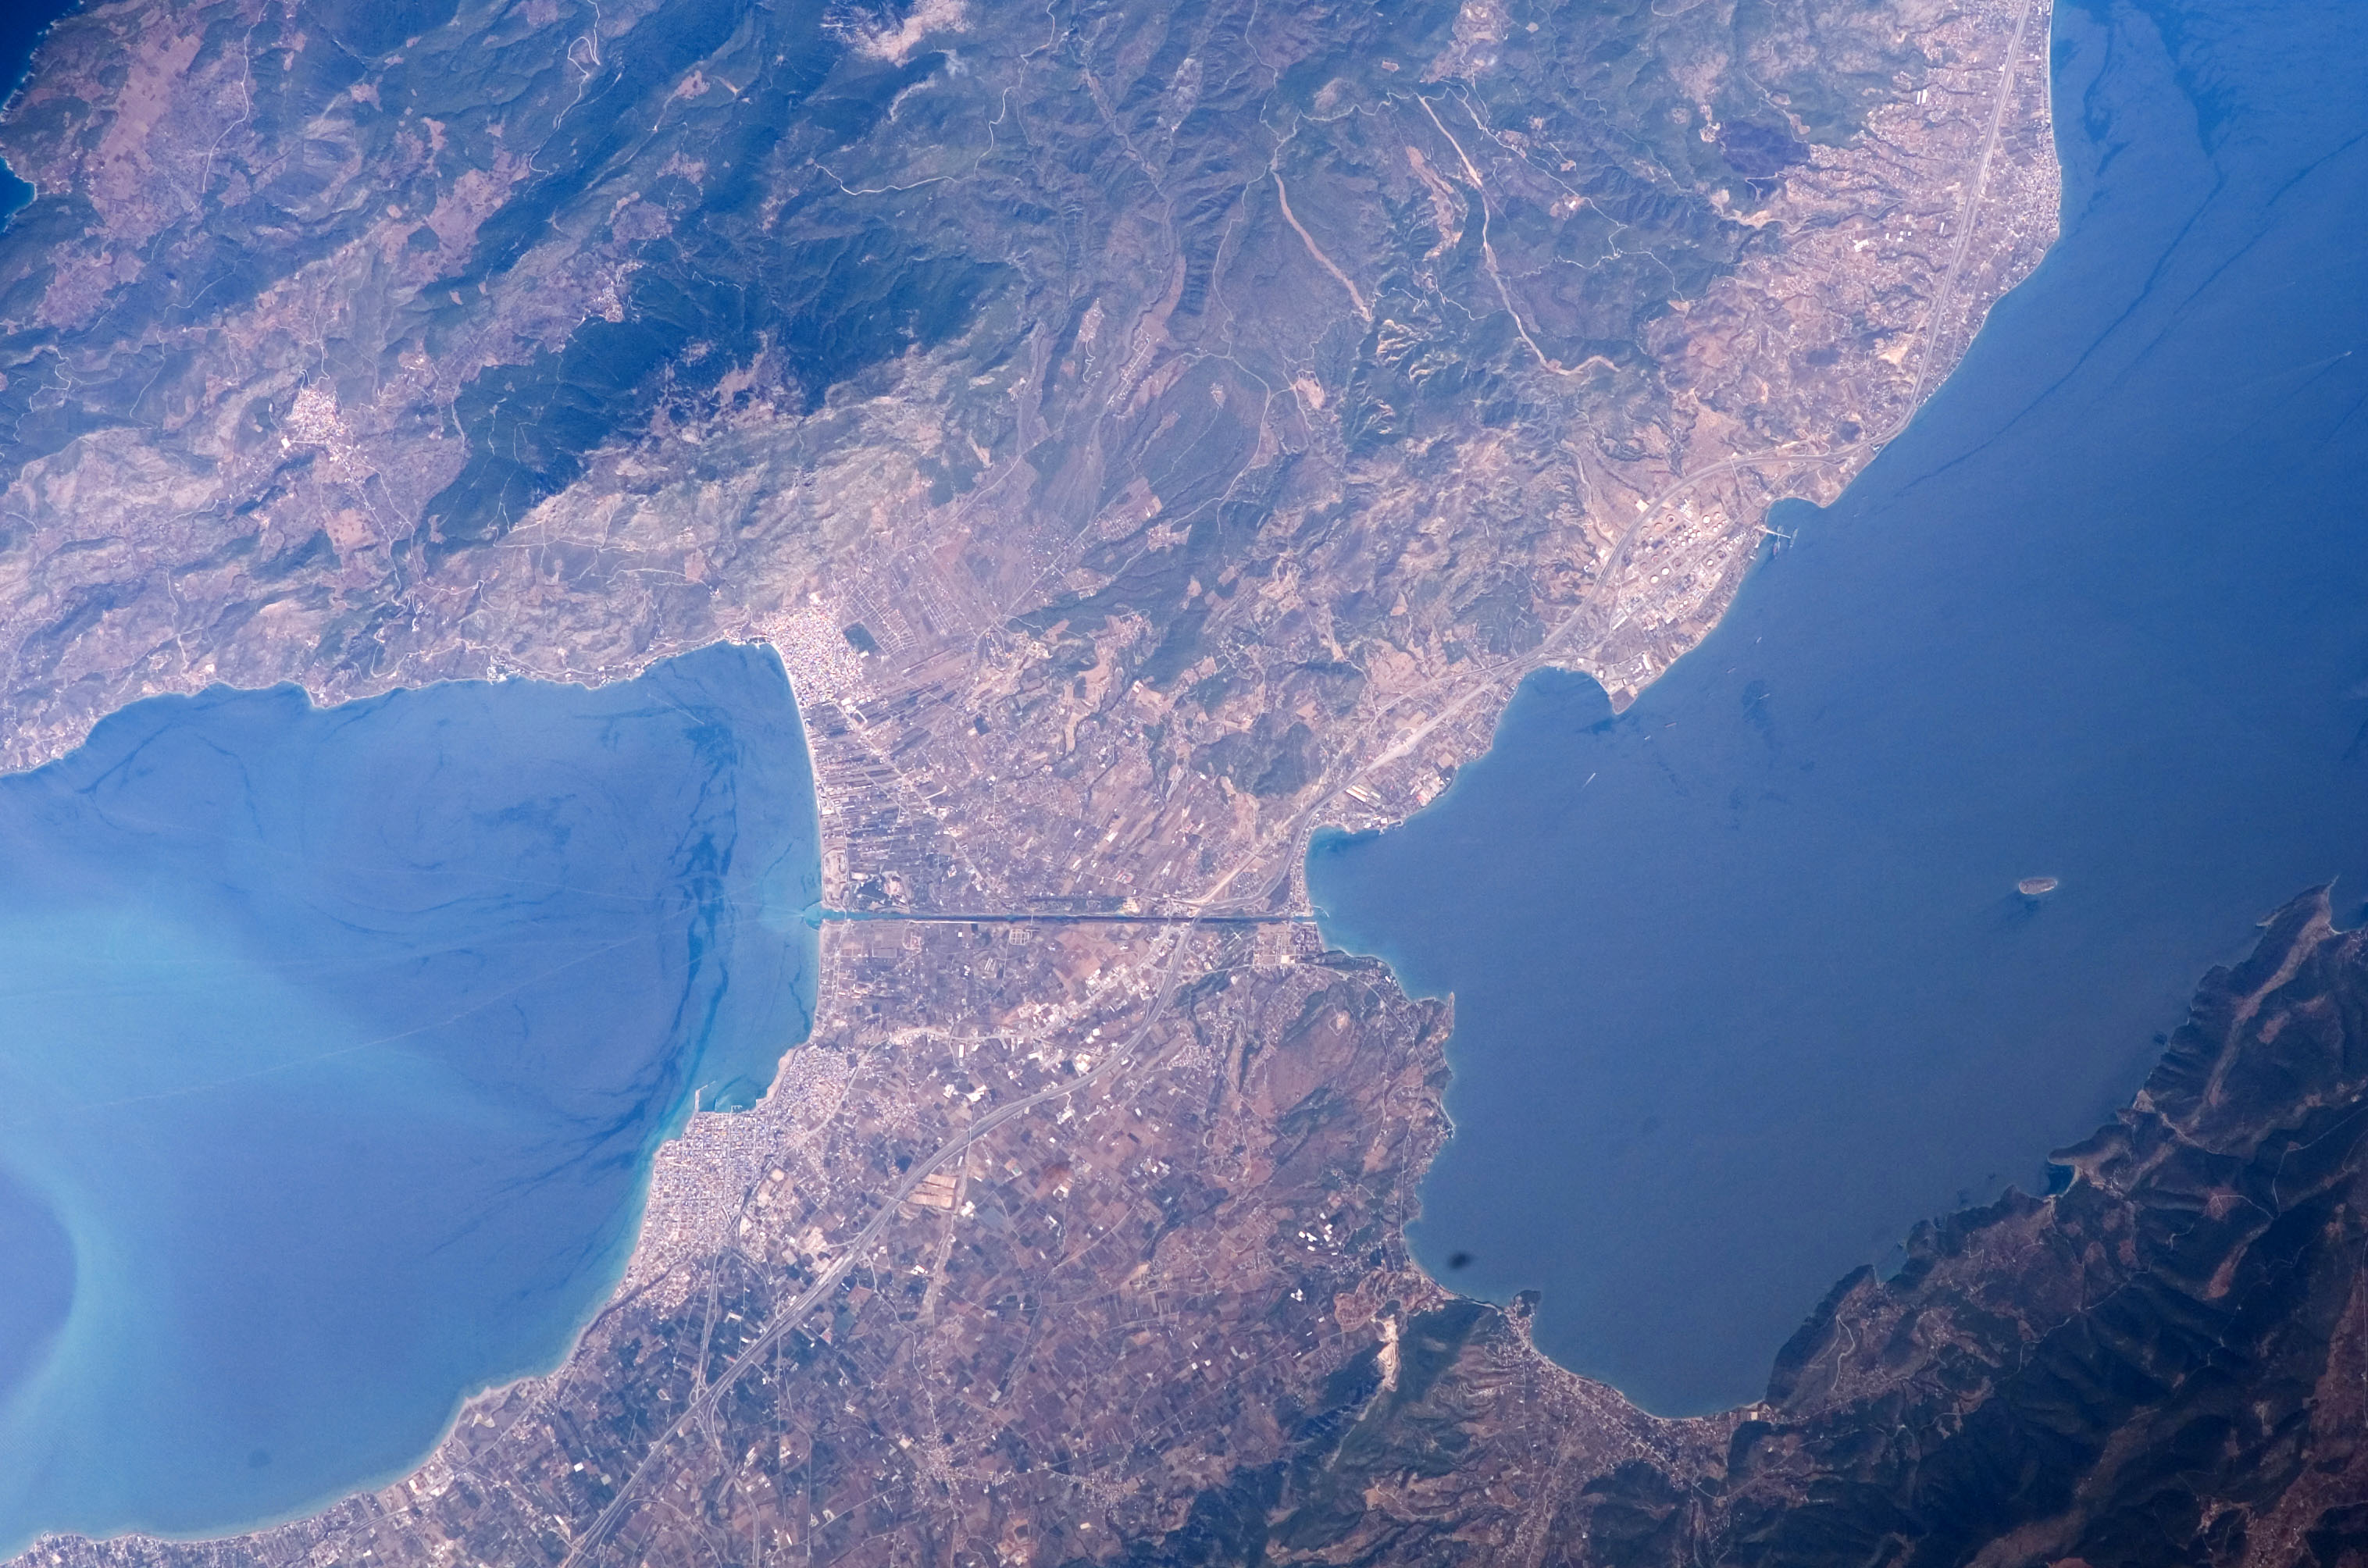 isthmus of corinth from space in greece image free stock photo